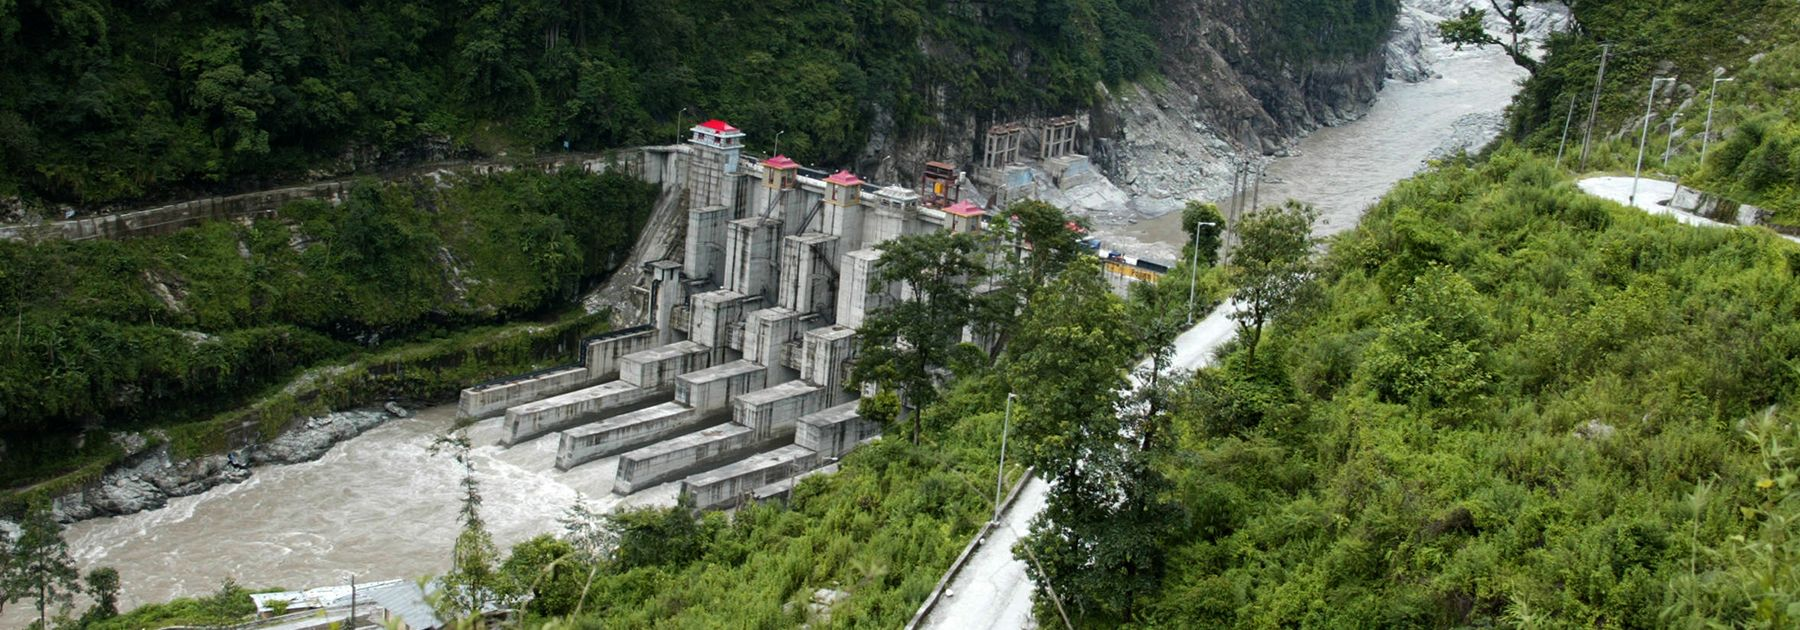 General view of construction of a Hydroelectric Project by India's National Hydroelectric Power Corporation (NHPC) on the River Teesta. (DIPTENDU DUTTA/AFP/GettyImages)